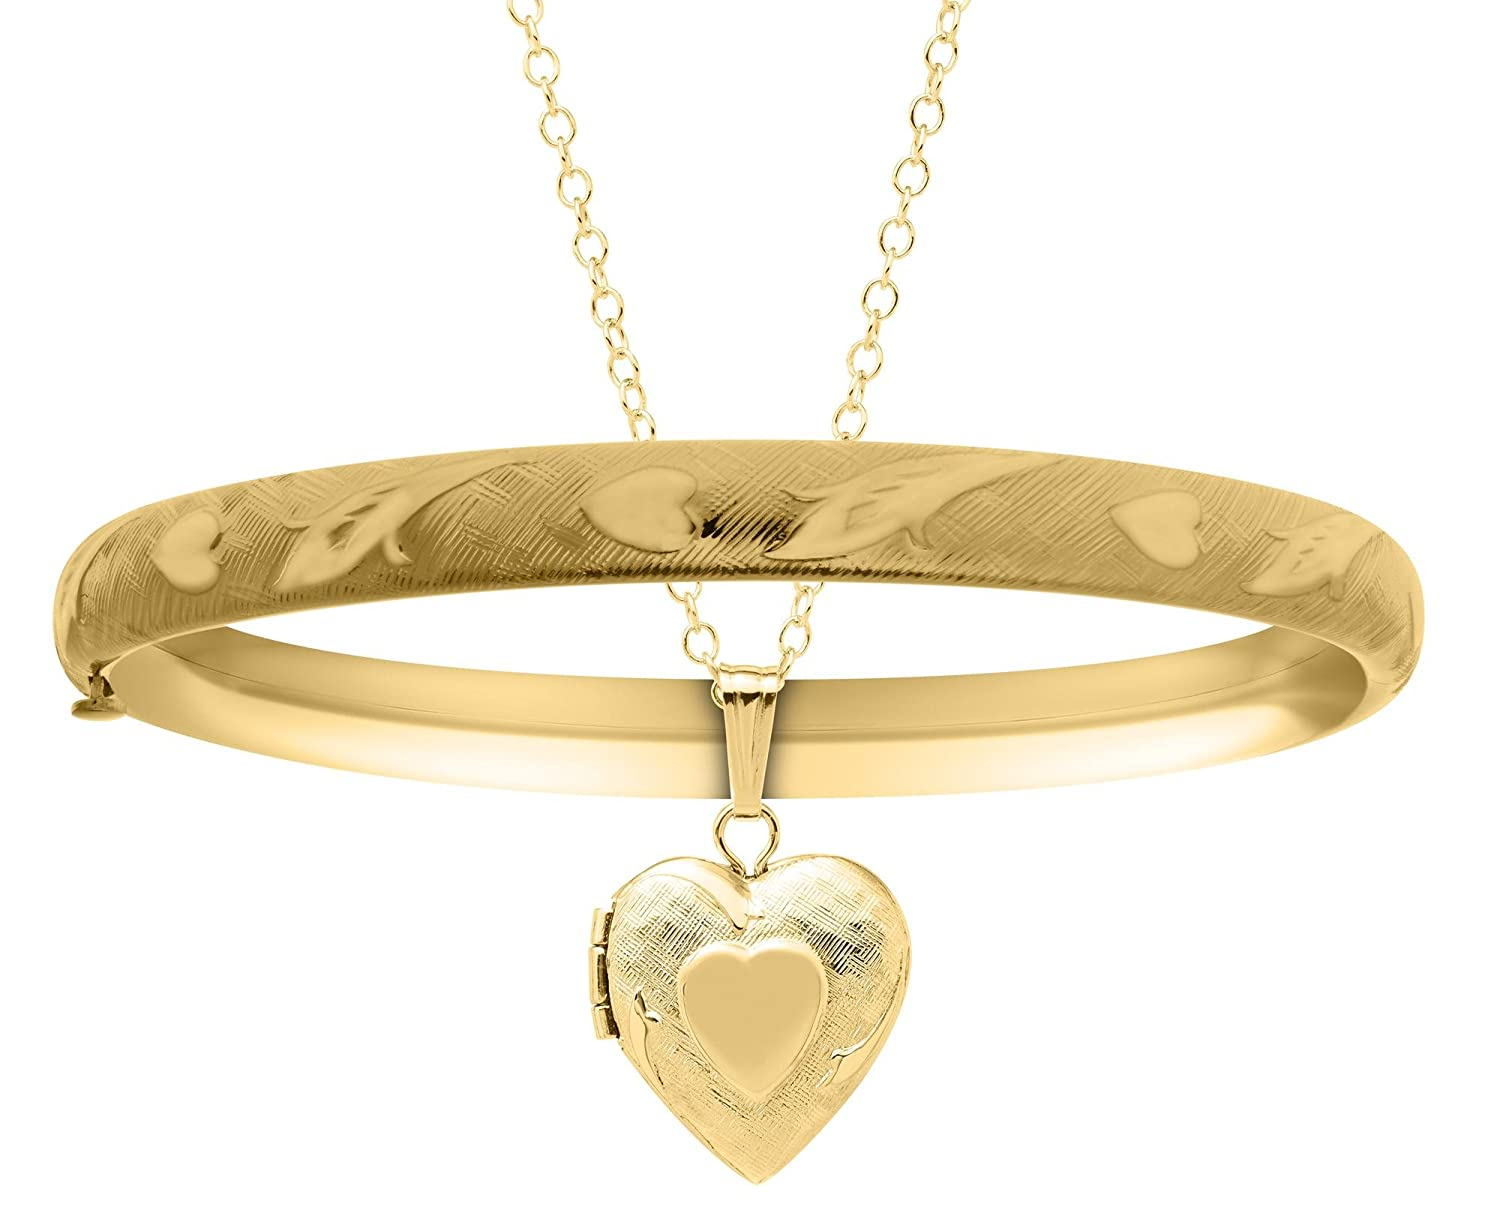 JAMBS JEWELRY HEART NECKLACE AND BANGLE BRACELET 14KT YELLOW GOLD FOR CHILDREN